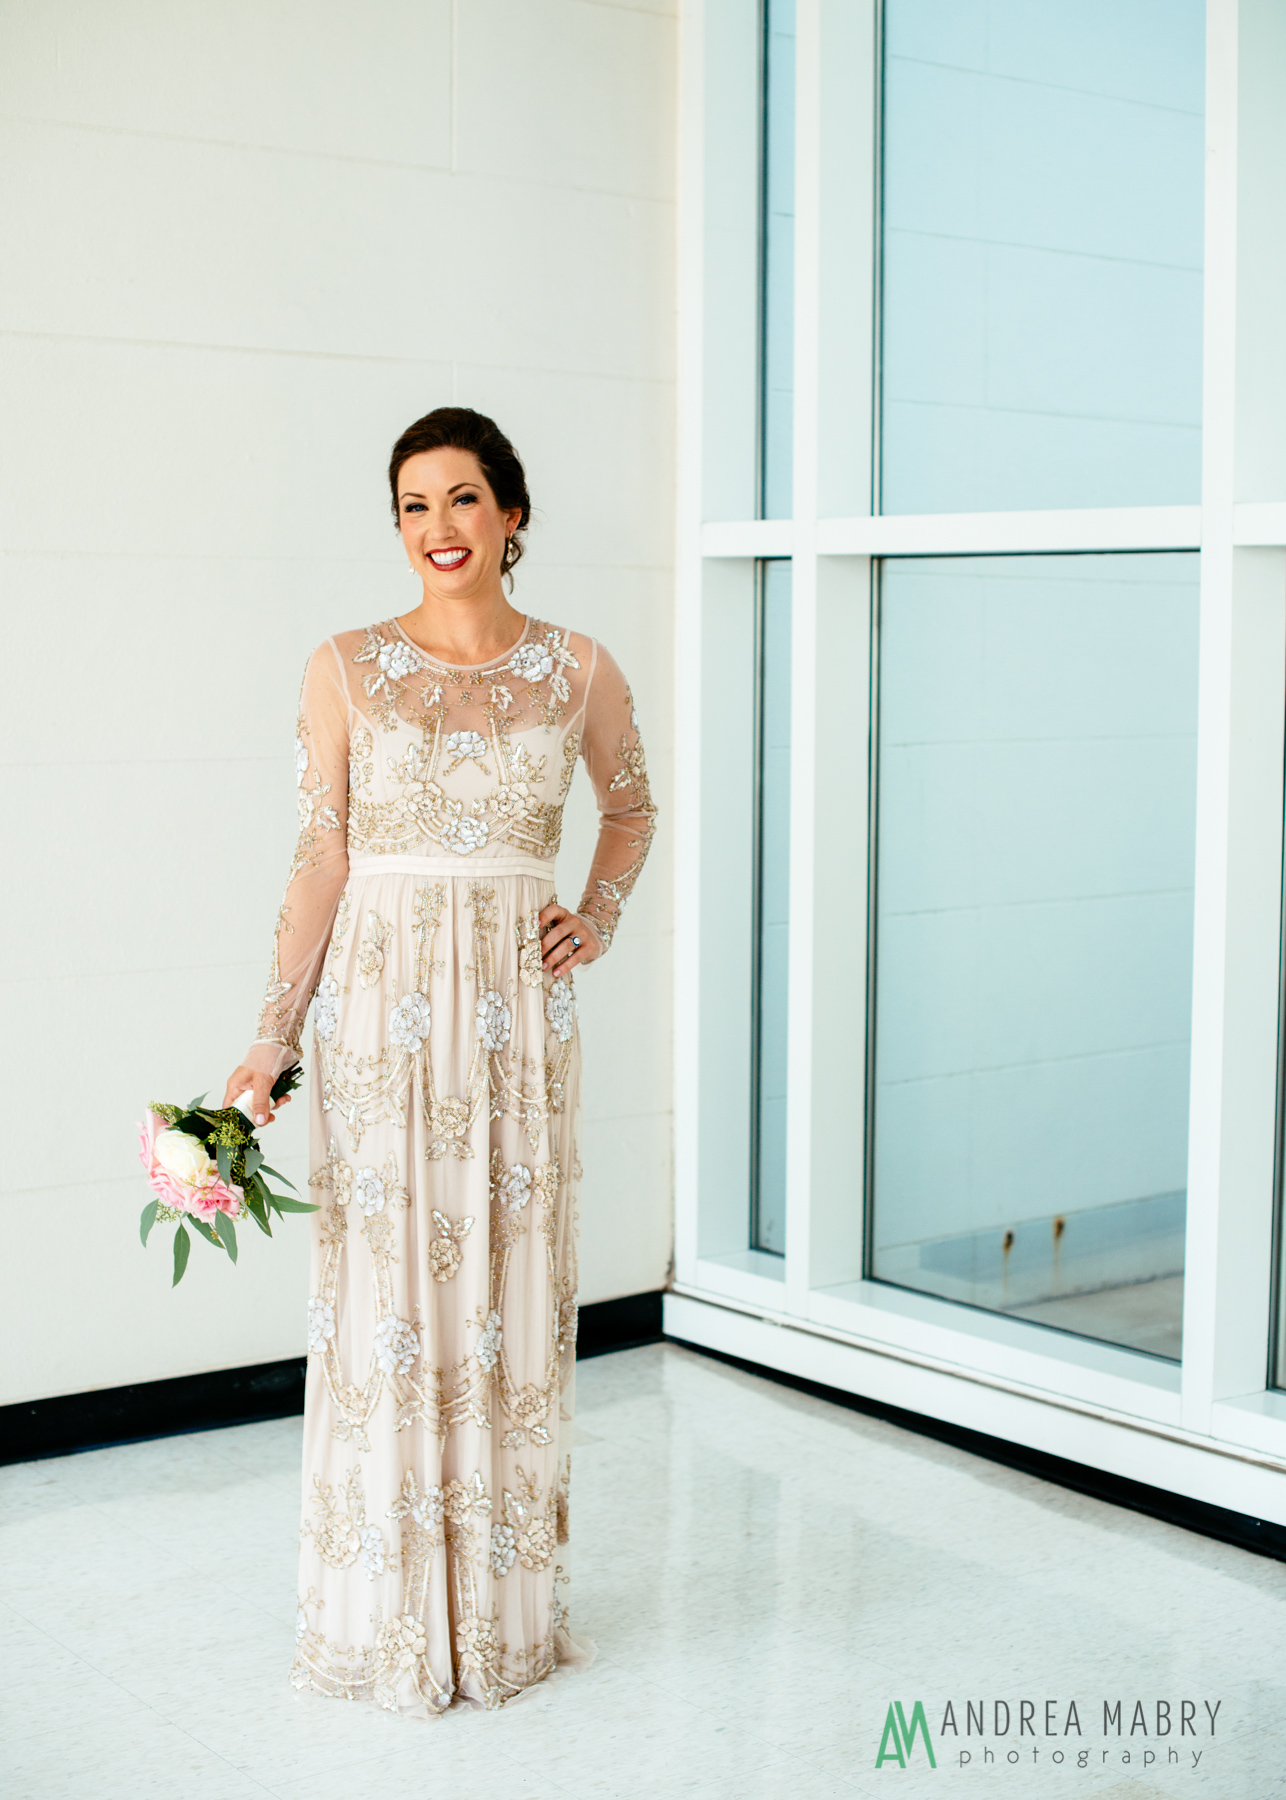 Bridal Portraits at the History Museum of Mobile. Government Street Presbyterian Church Mobile Wedding. Andrea Mabry Photography.